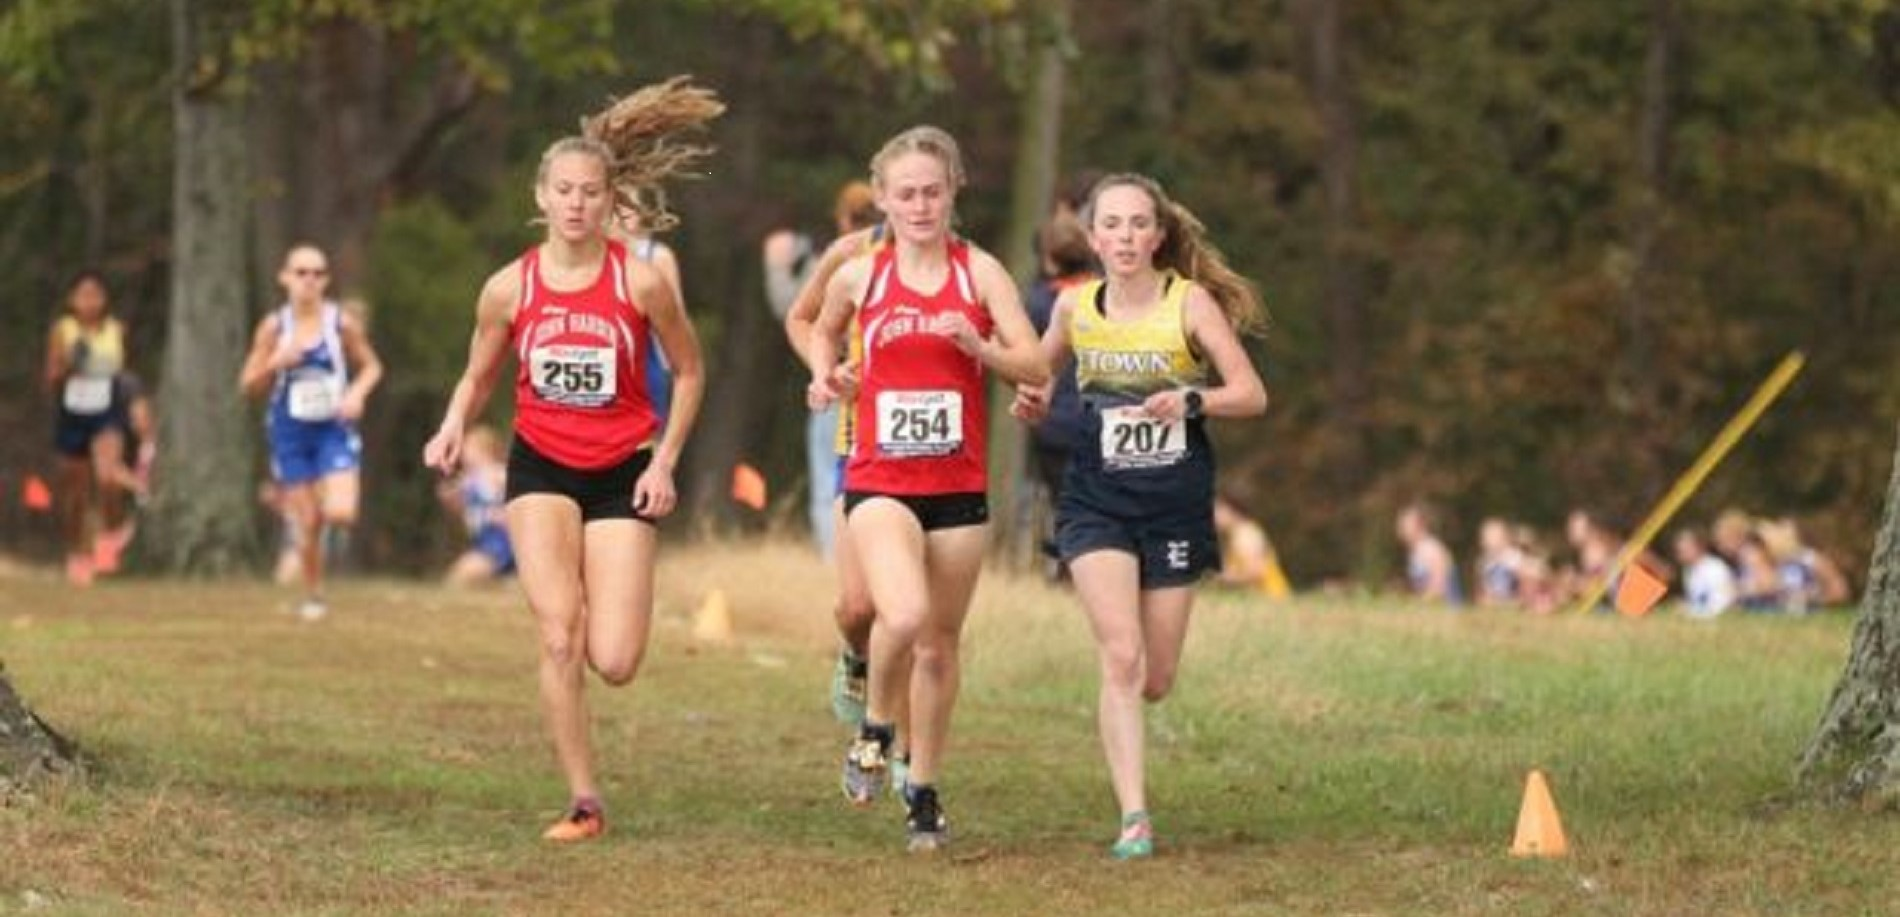 JHHS Girls XC runners - Savannah Hossfeld & Jenna Grogan